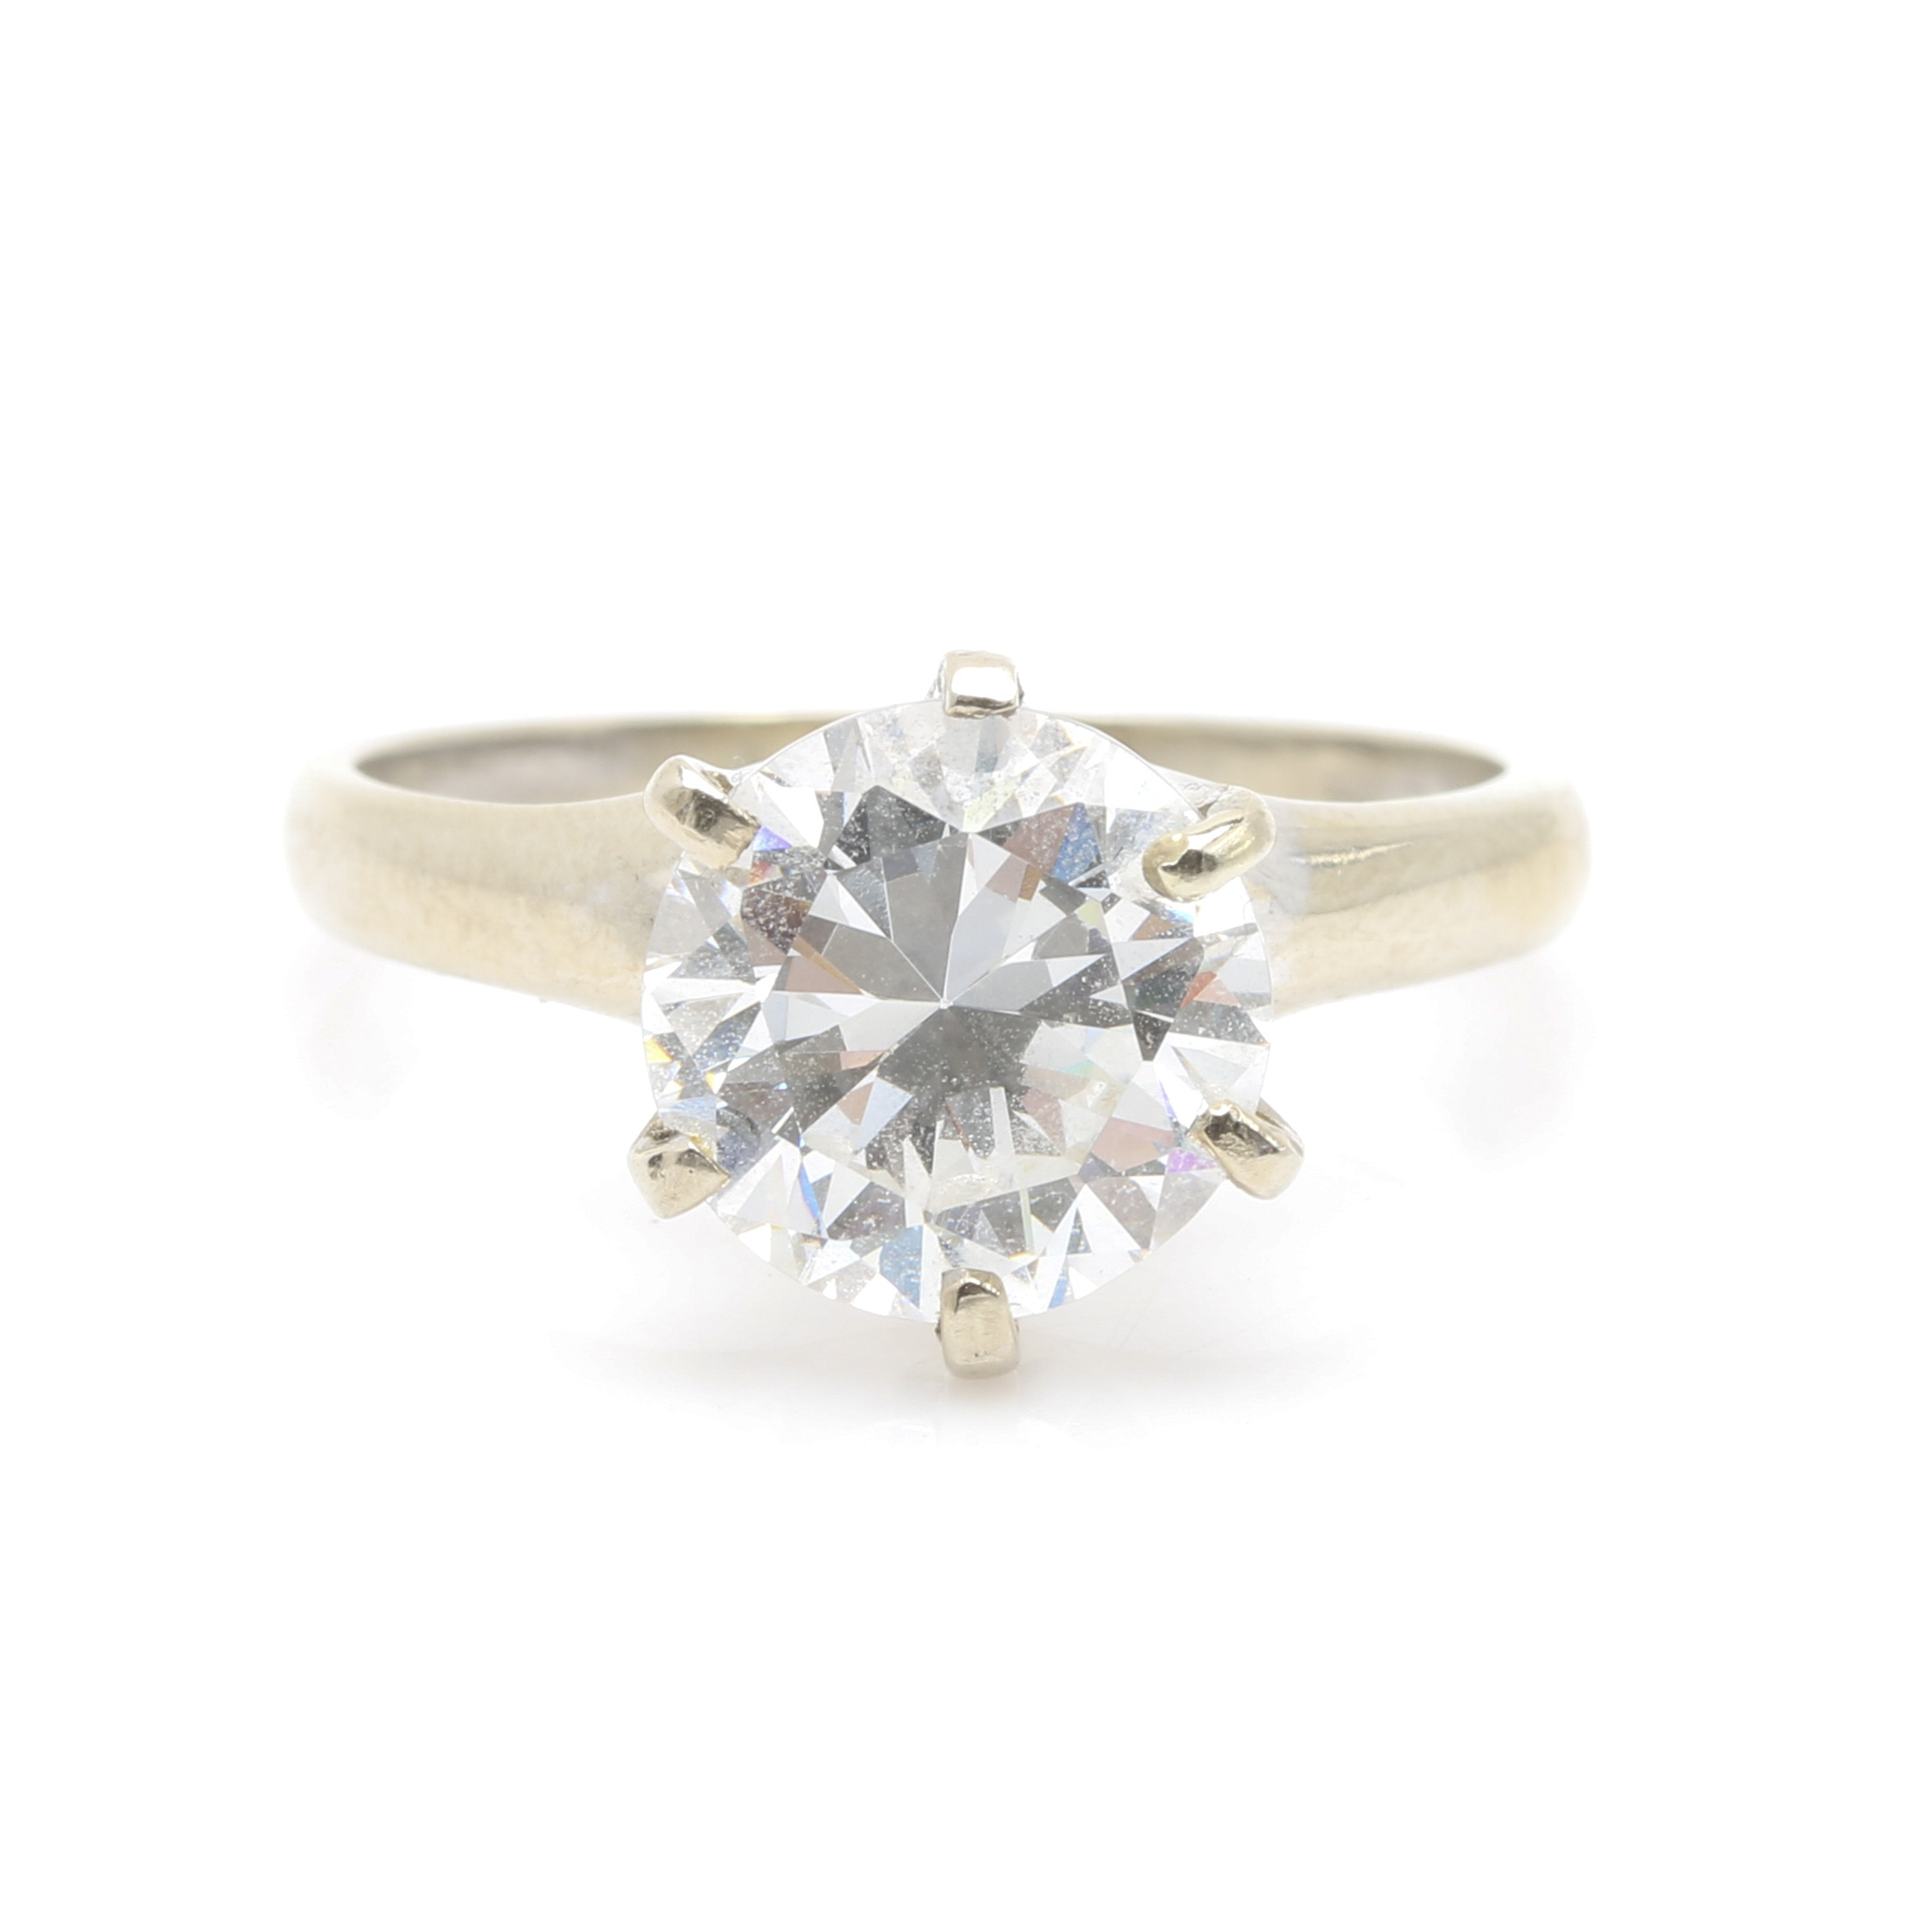 14K White Gold Cubic Zirconia Solitaire Ring